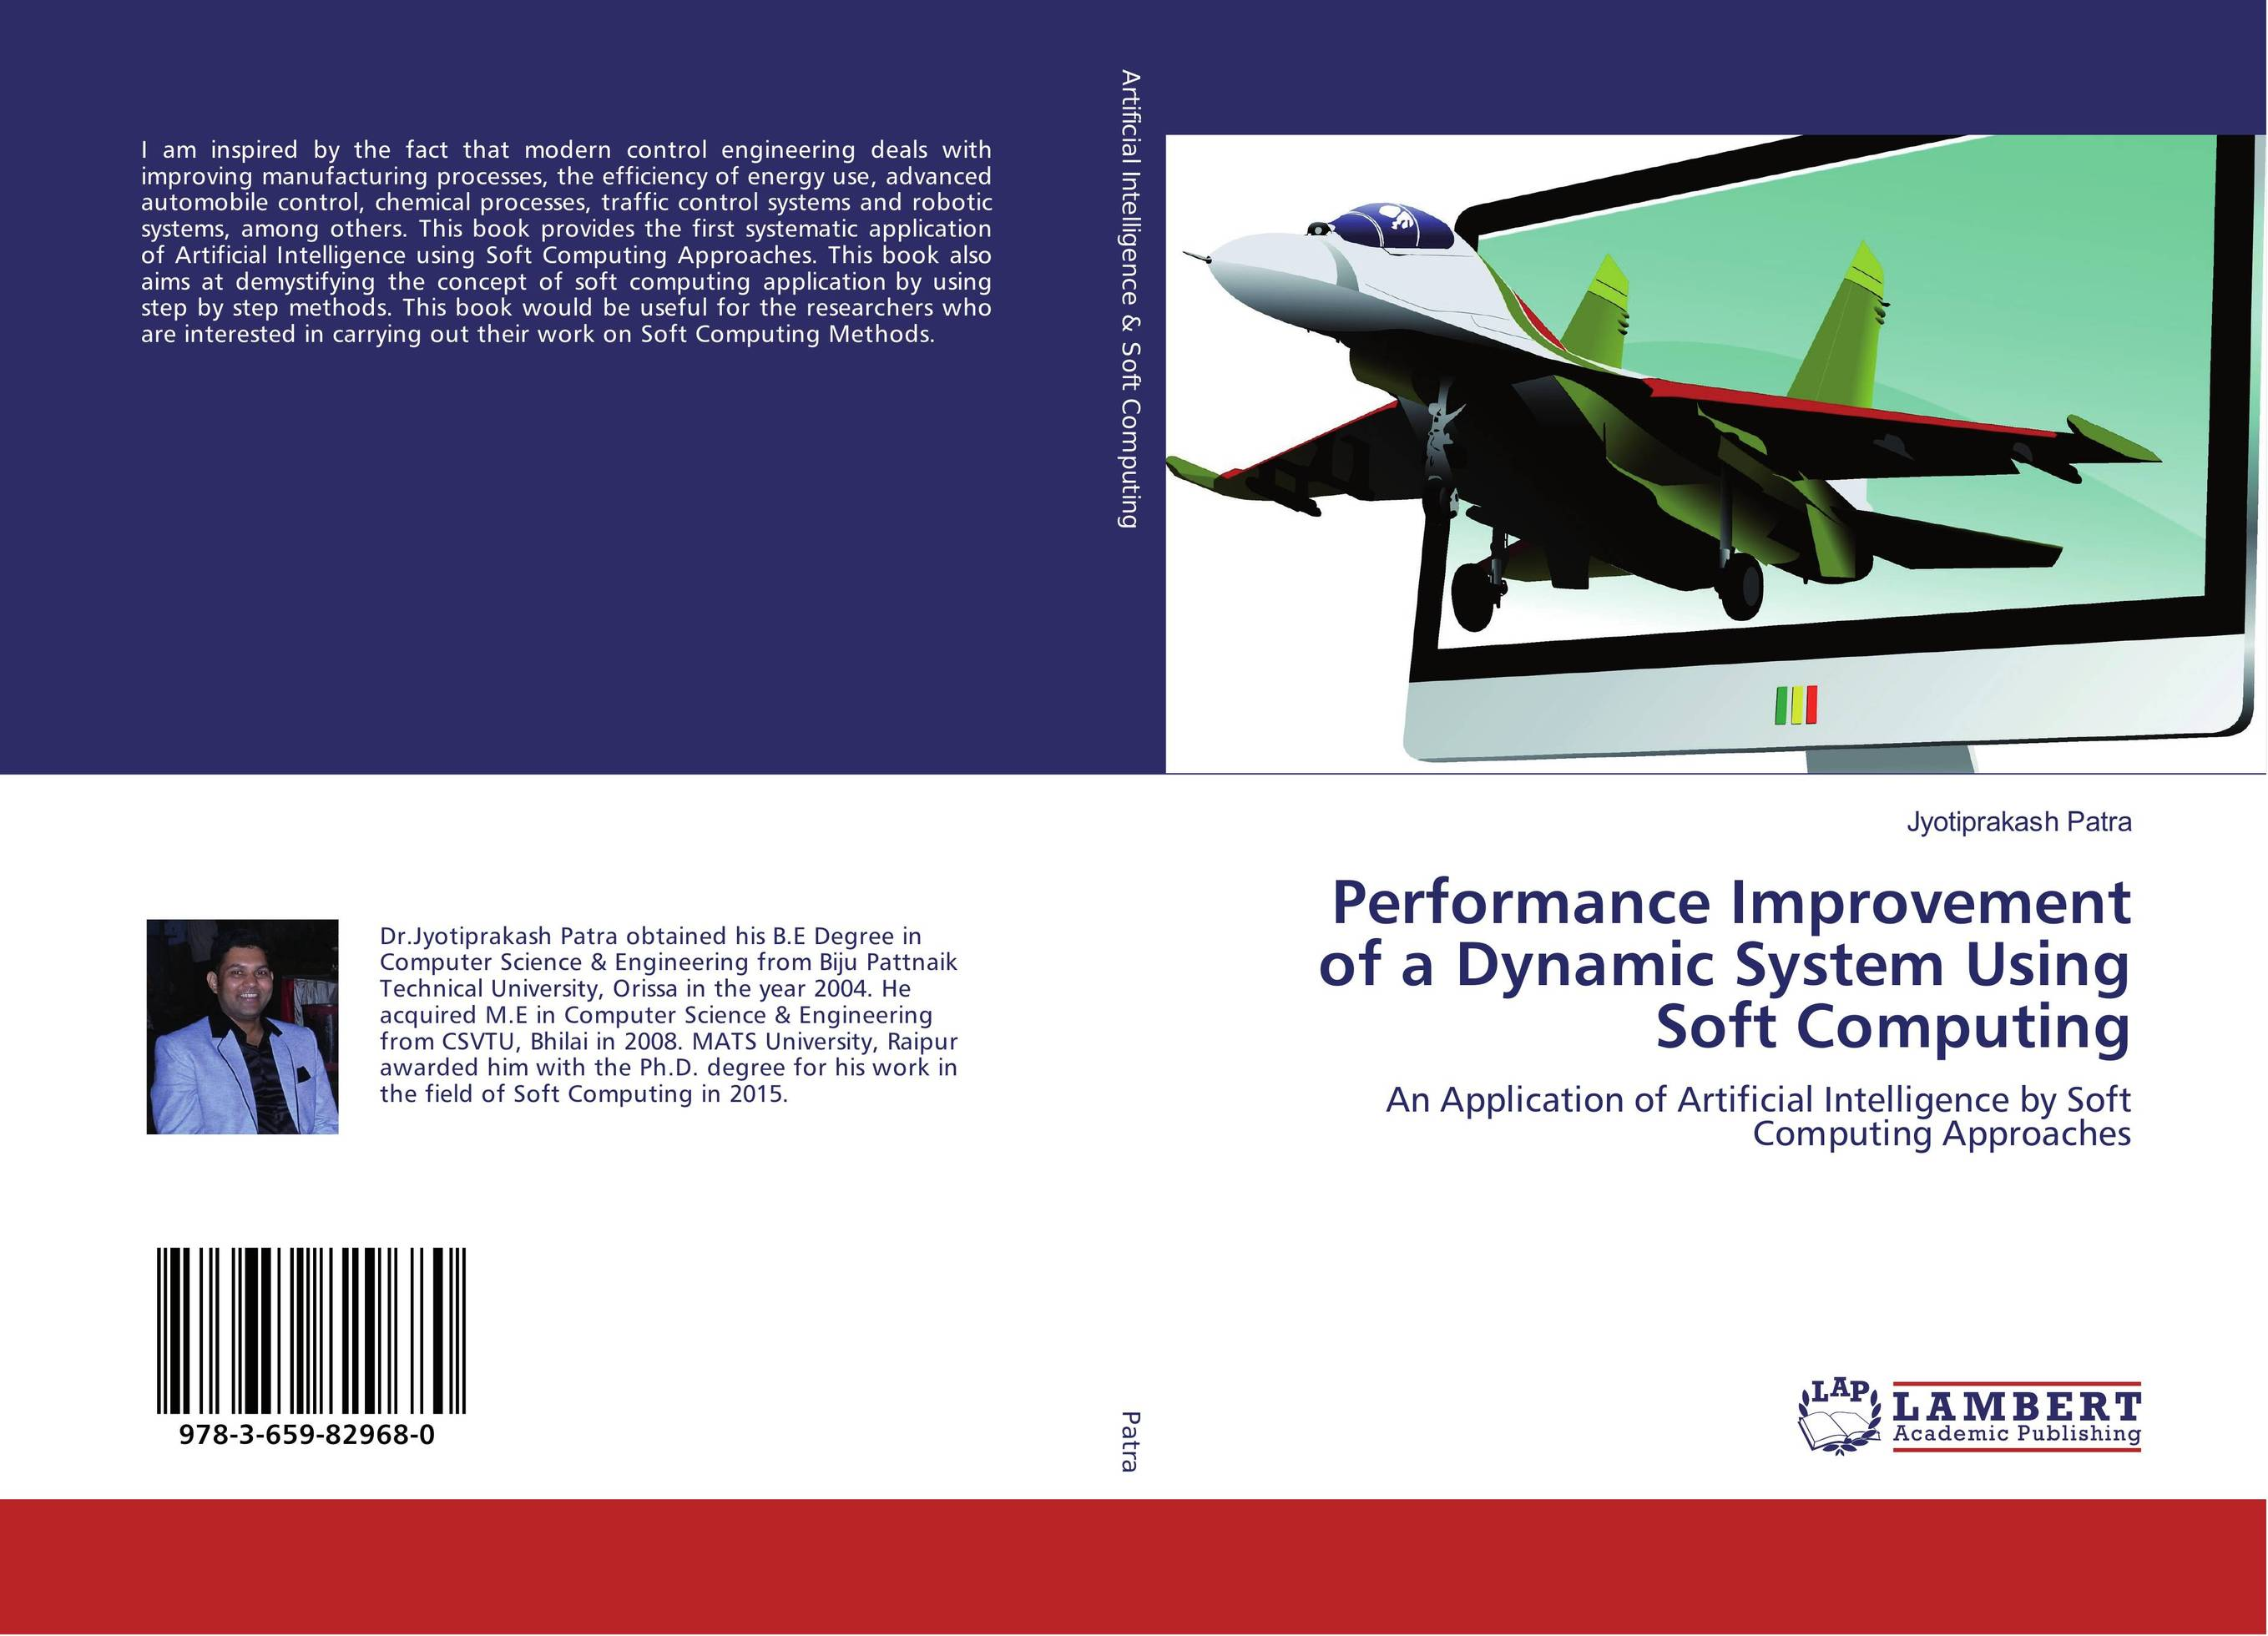 Performance Improvement of a Dynamic System Using Soft Computing soft computing and applications